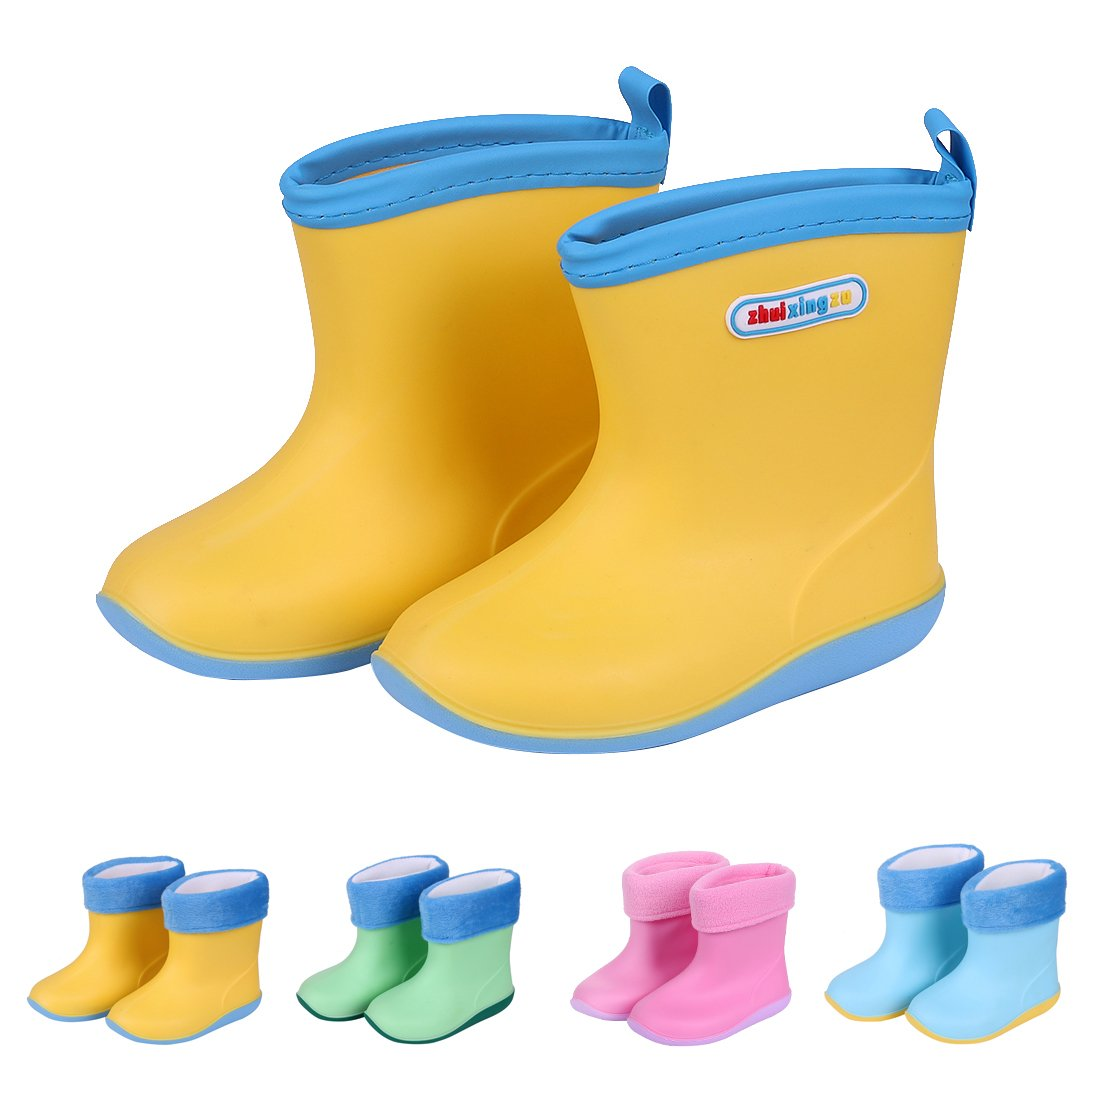 Asgard Cute Rain Boots for Kids Waterproof Candy Color Ankel Rubber Boots, with Warm Cosy Soft Socks Y19